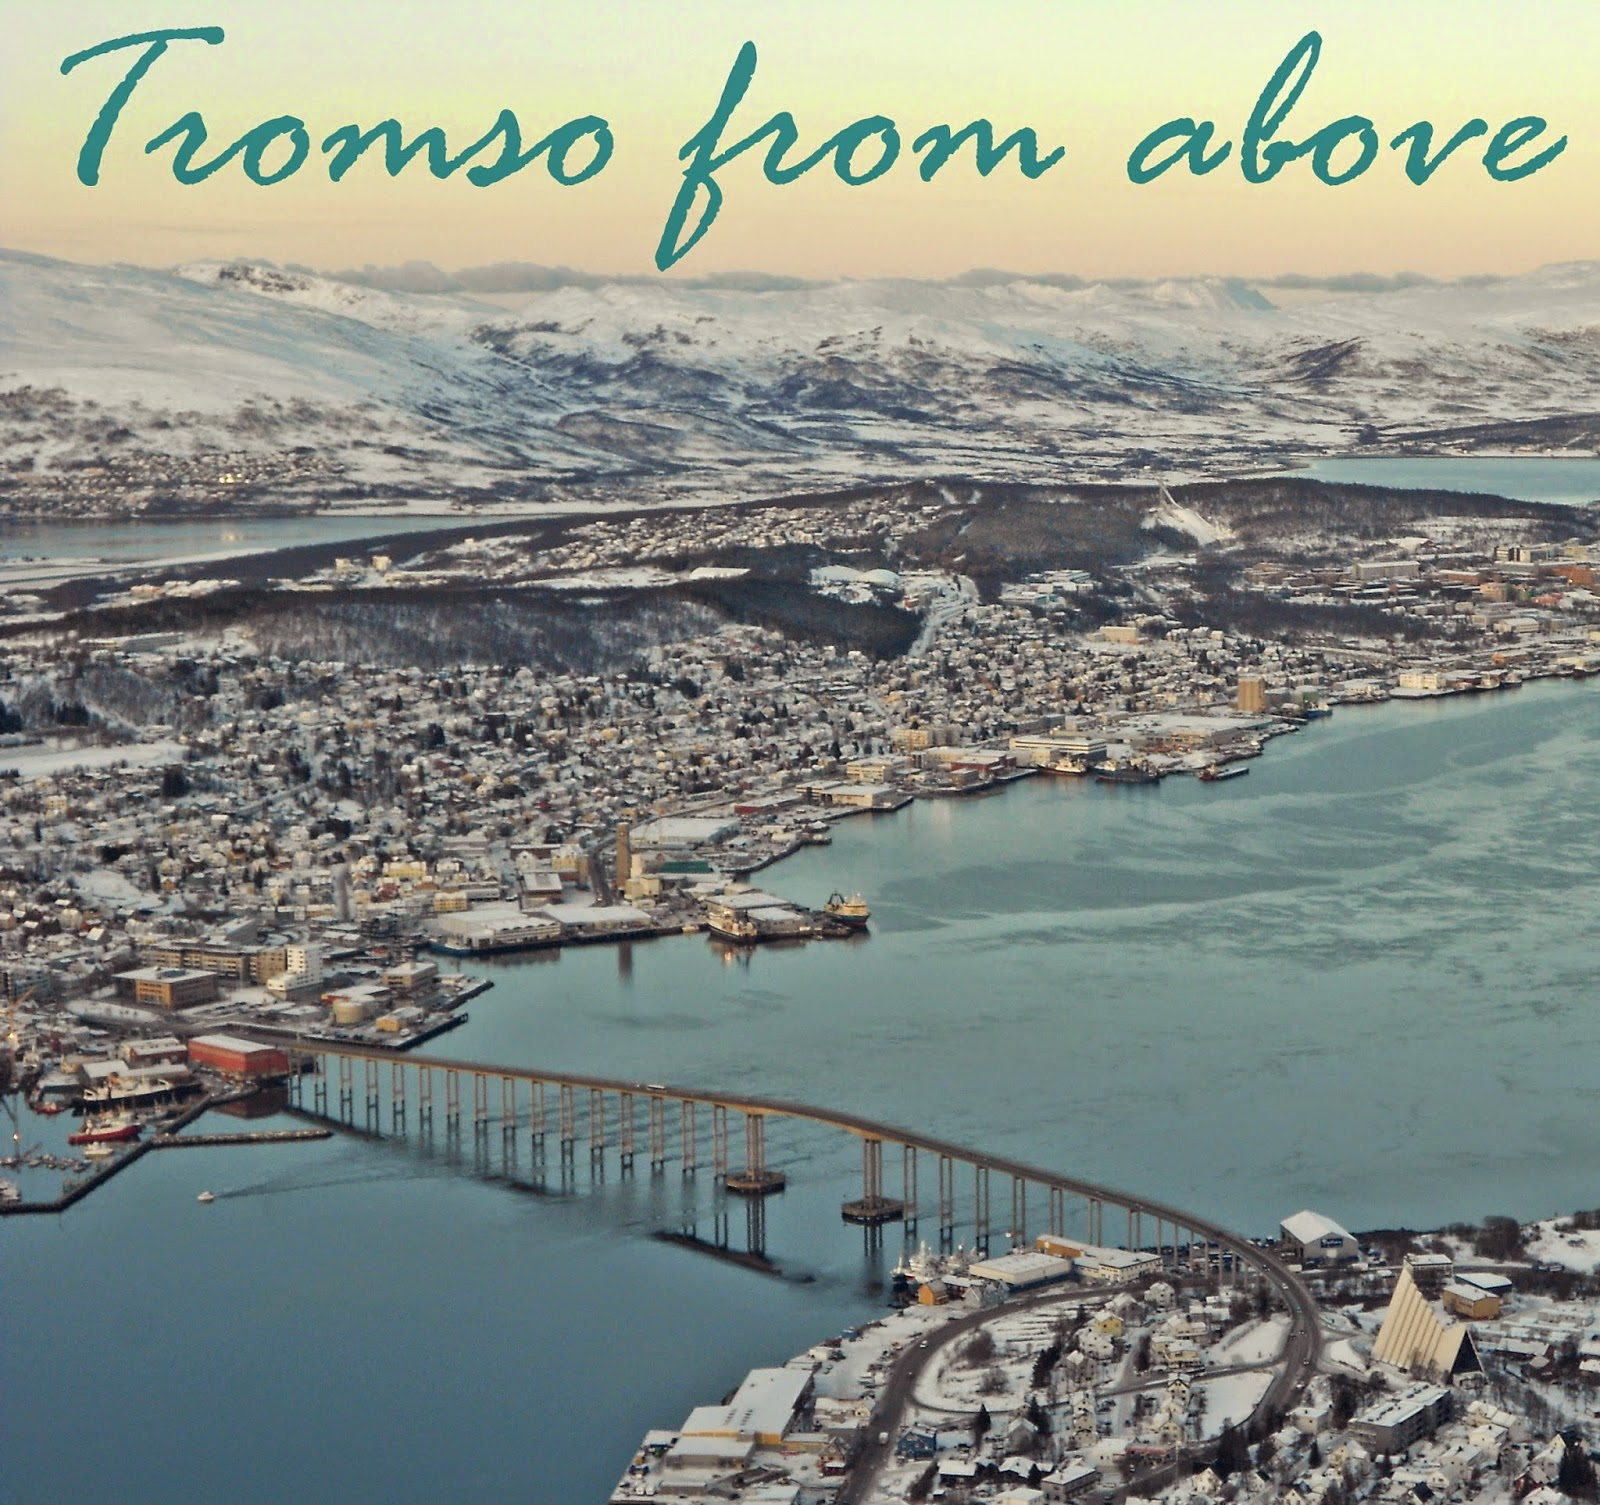 Tromsø is a gorgeous city, even more so as seen from above!